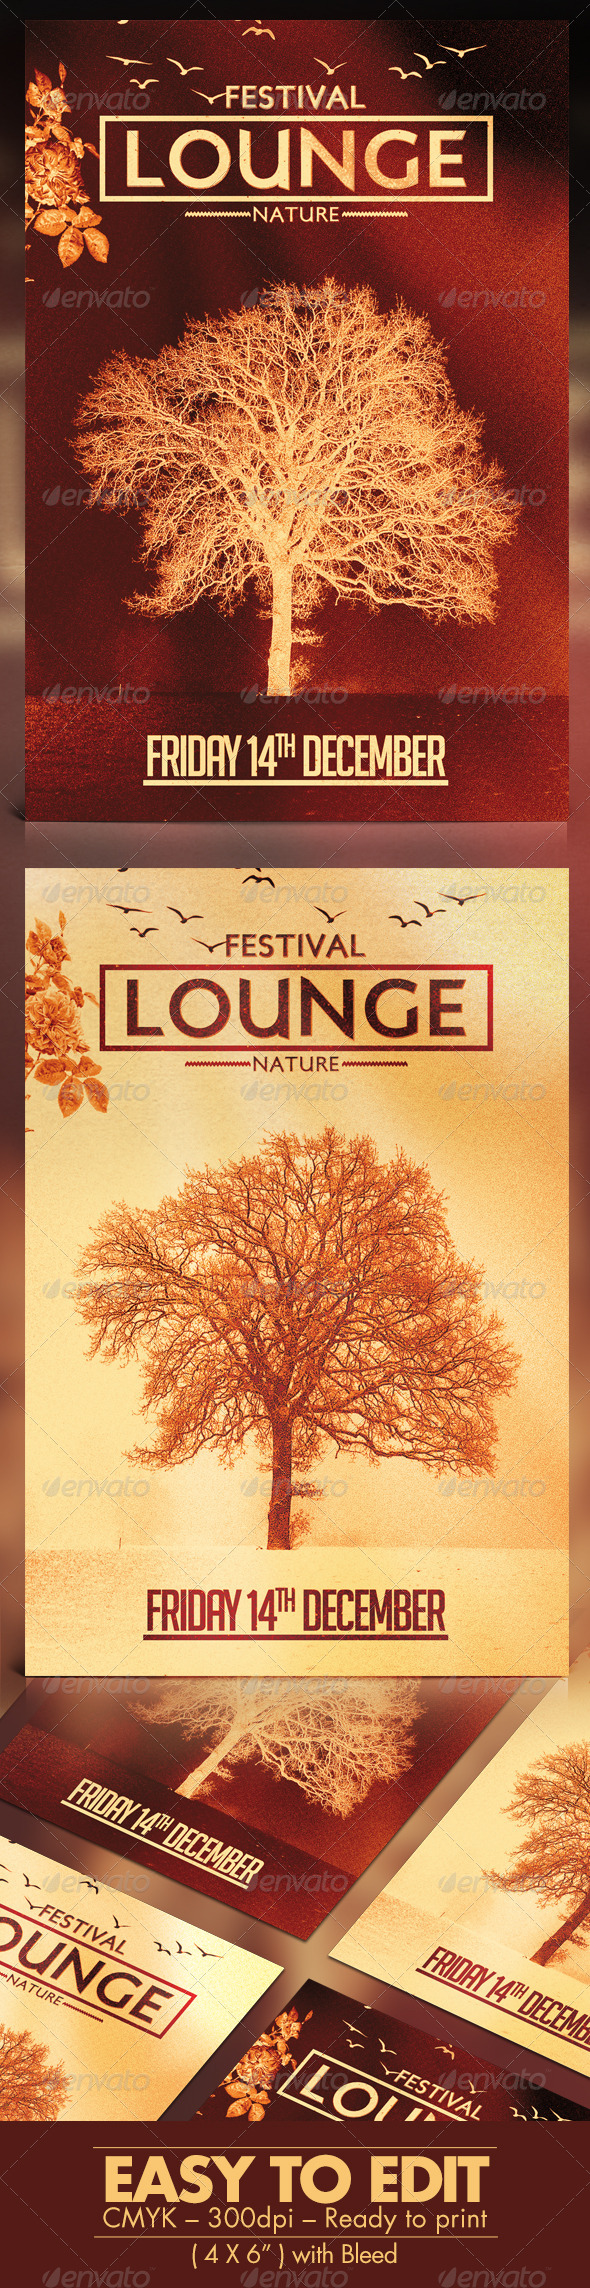 GraphicRiver Festival Lounge Flyer 7843687